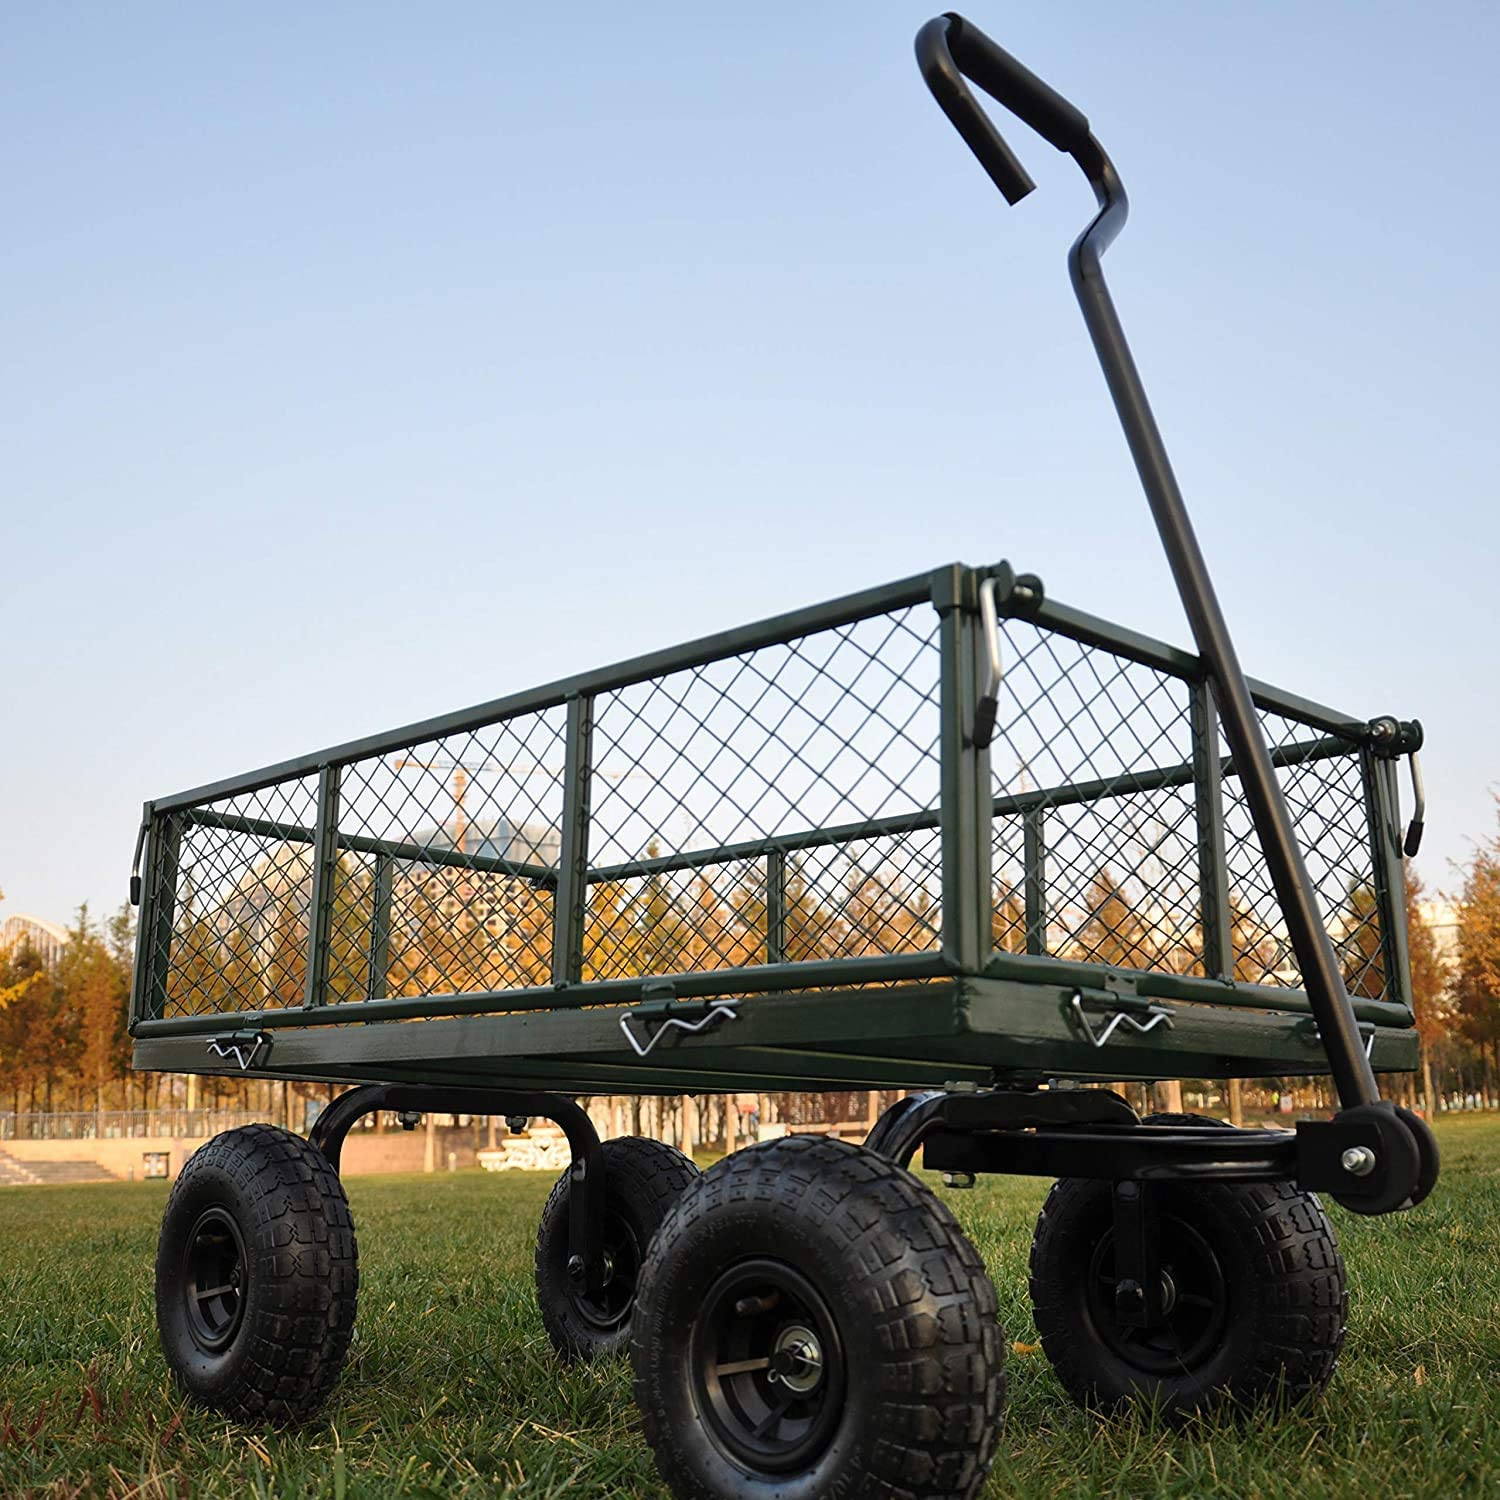 Garden Cart Wagon Steel Utility with Removable Sides and 4 Wheels,for Gardening Yard Work, Heavy Duty 660 lbs Capacity